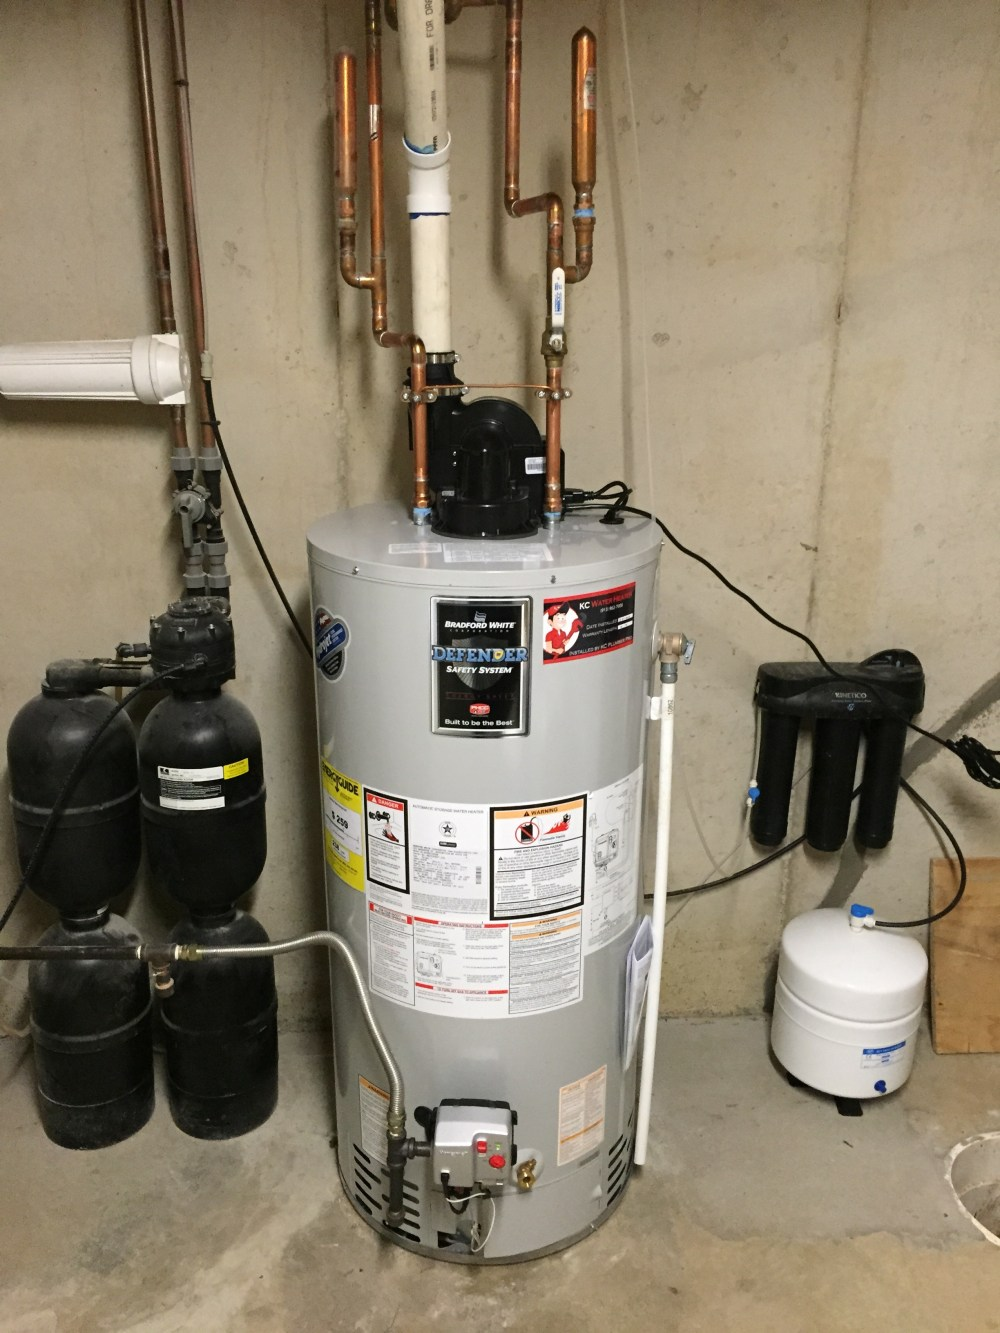 medium resolution of power vent water heaters kansas city bradford white power vent water heater e1428983586196 power vent water heaters kansas city ge water heater